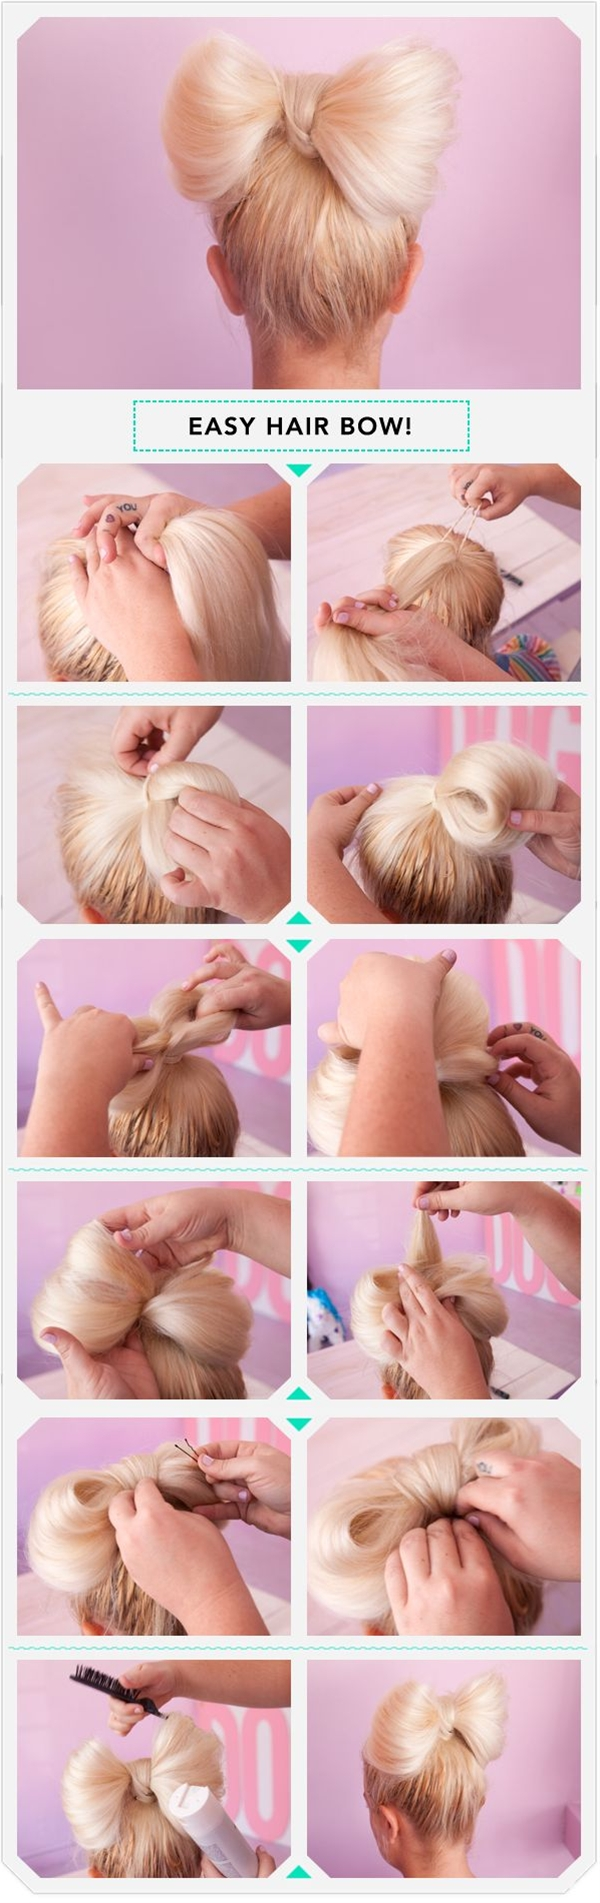 Girlie, youthful, and fun, the ultra-feminine bow can also be a creative way to add a dash of dainty to your hair look. Make the classic accessory fit your ladylike style with new DIY effects that work for the everyday.